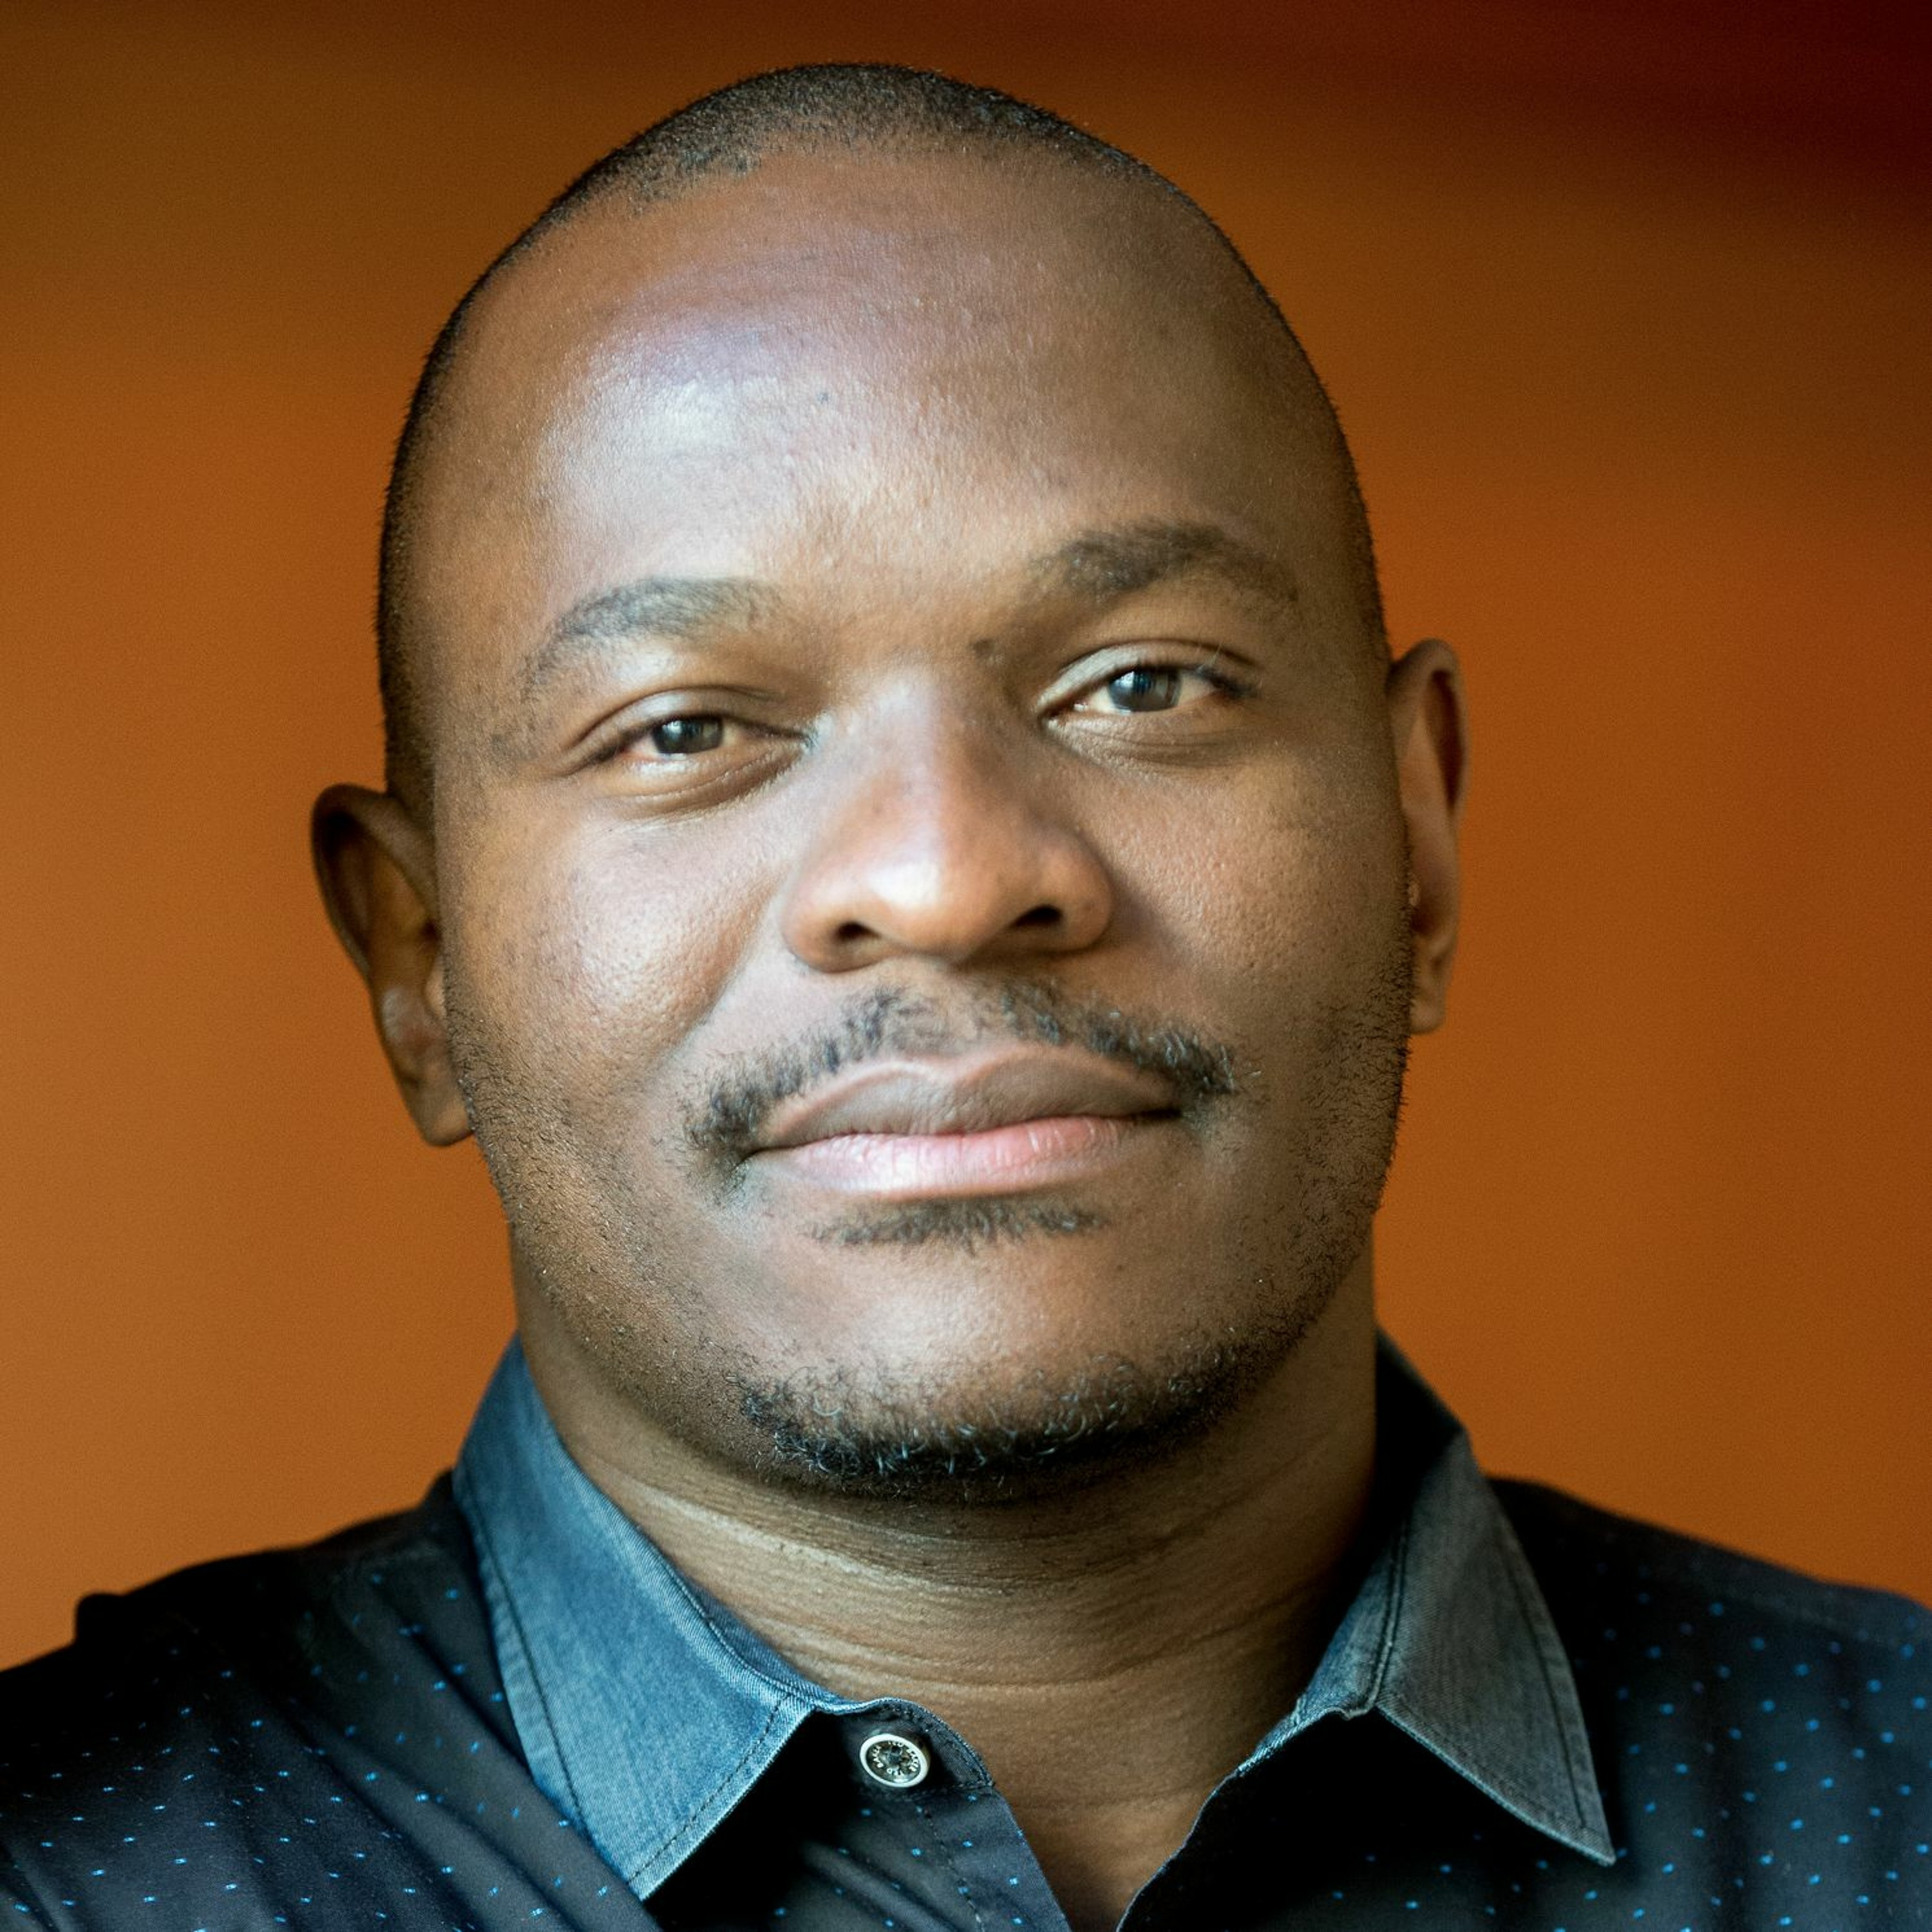 Pule Taukobong of CRE Venture Capital on grooming African founders for success